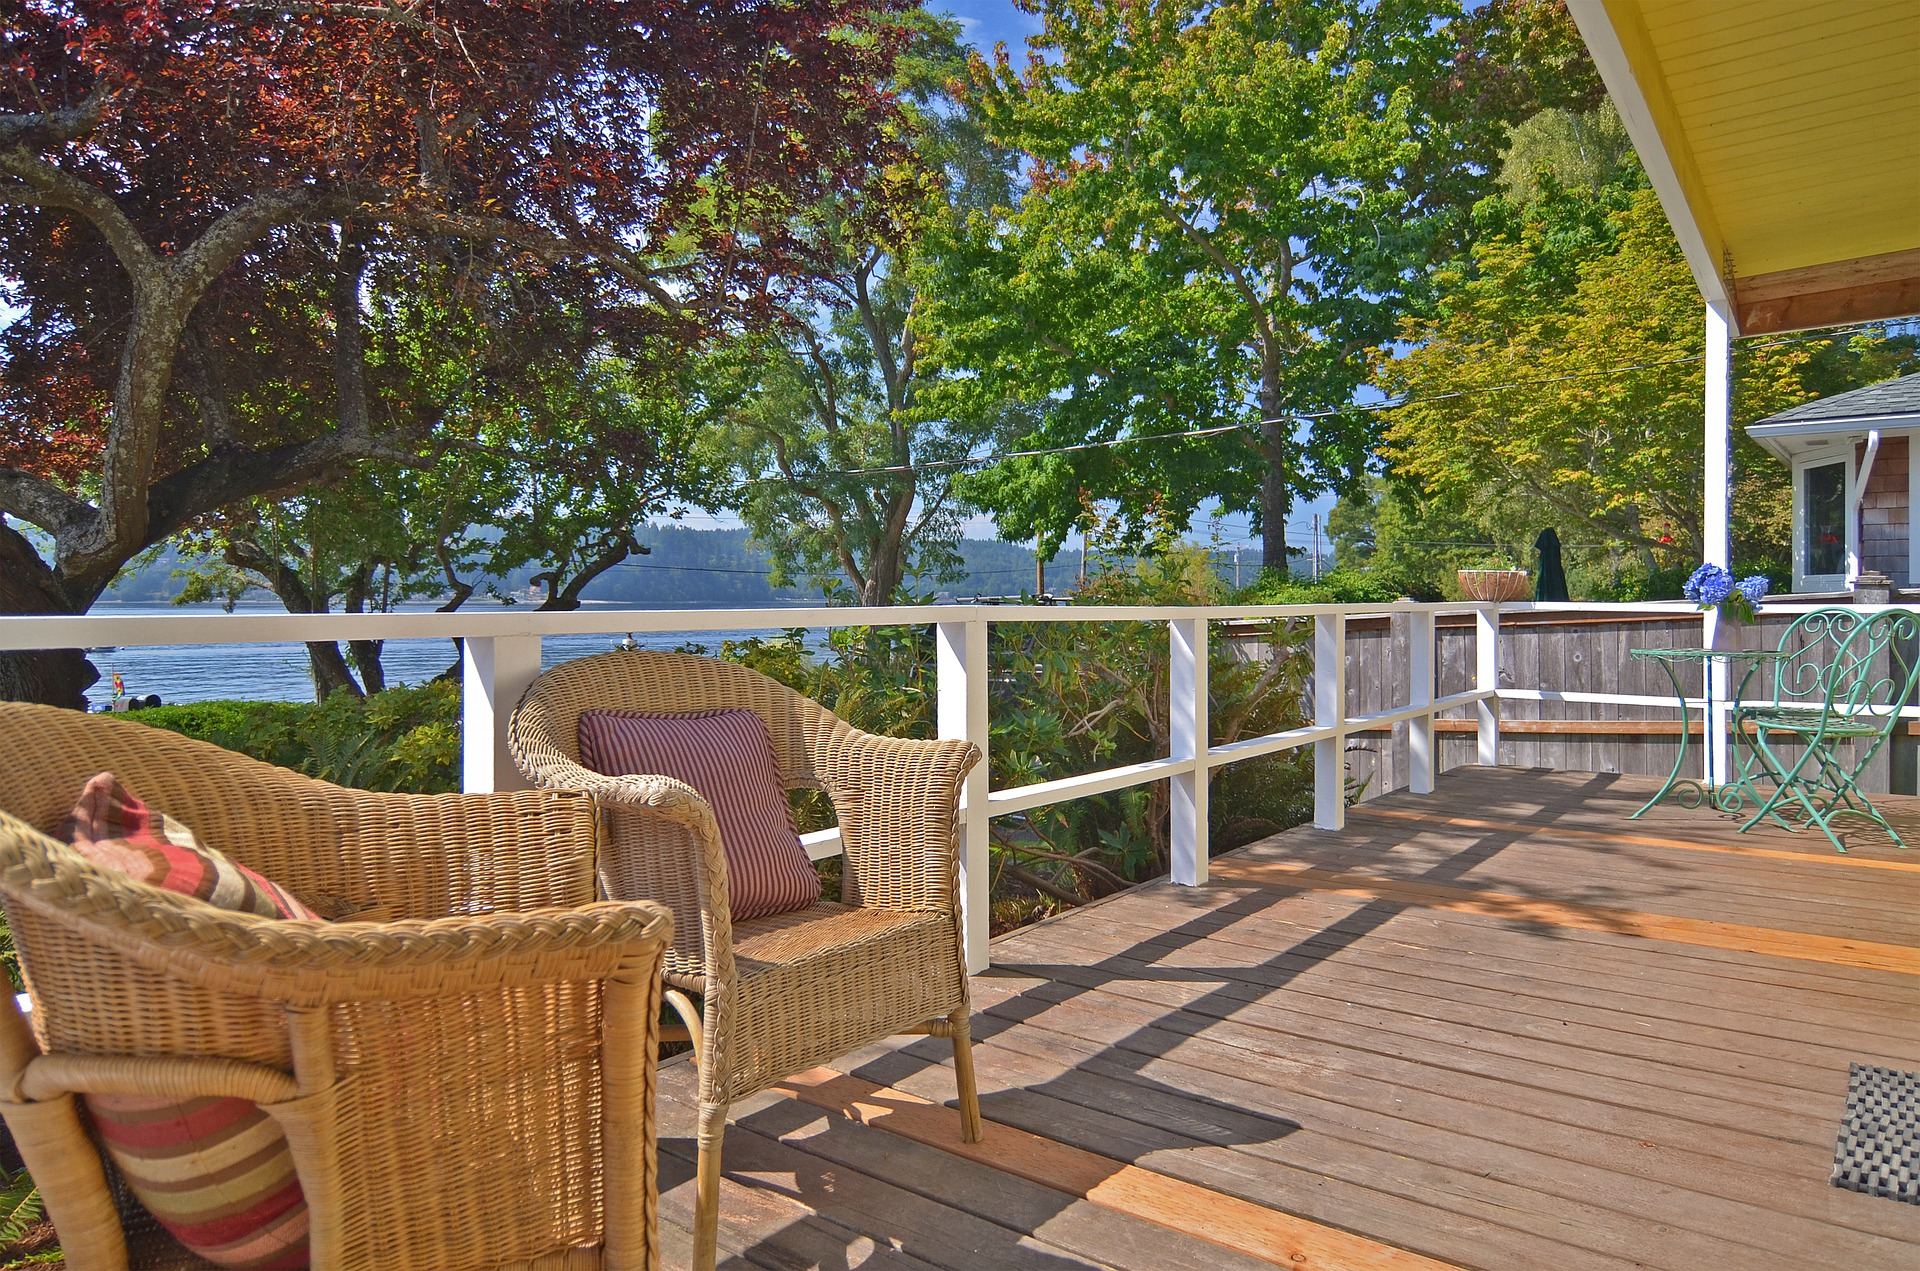 Planning A Deck for This Summer?  Be Patient!